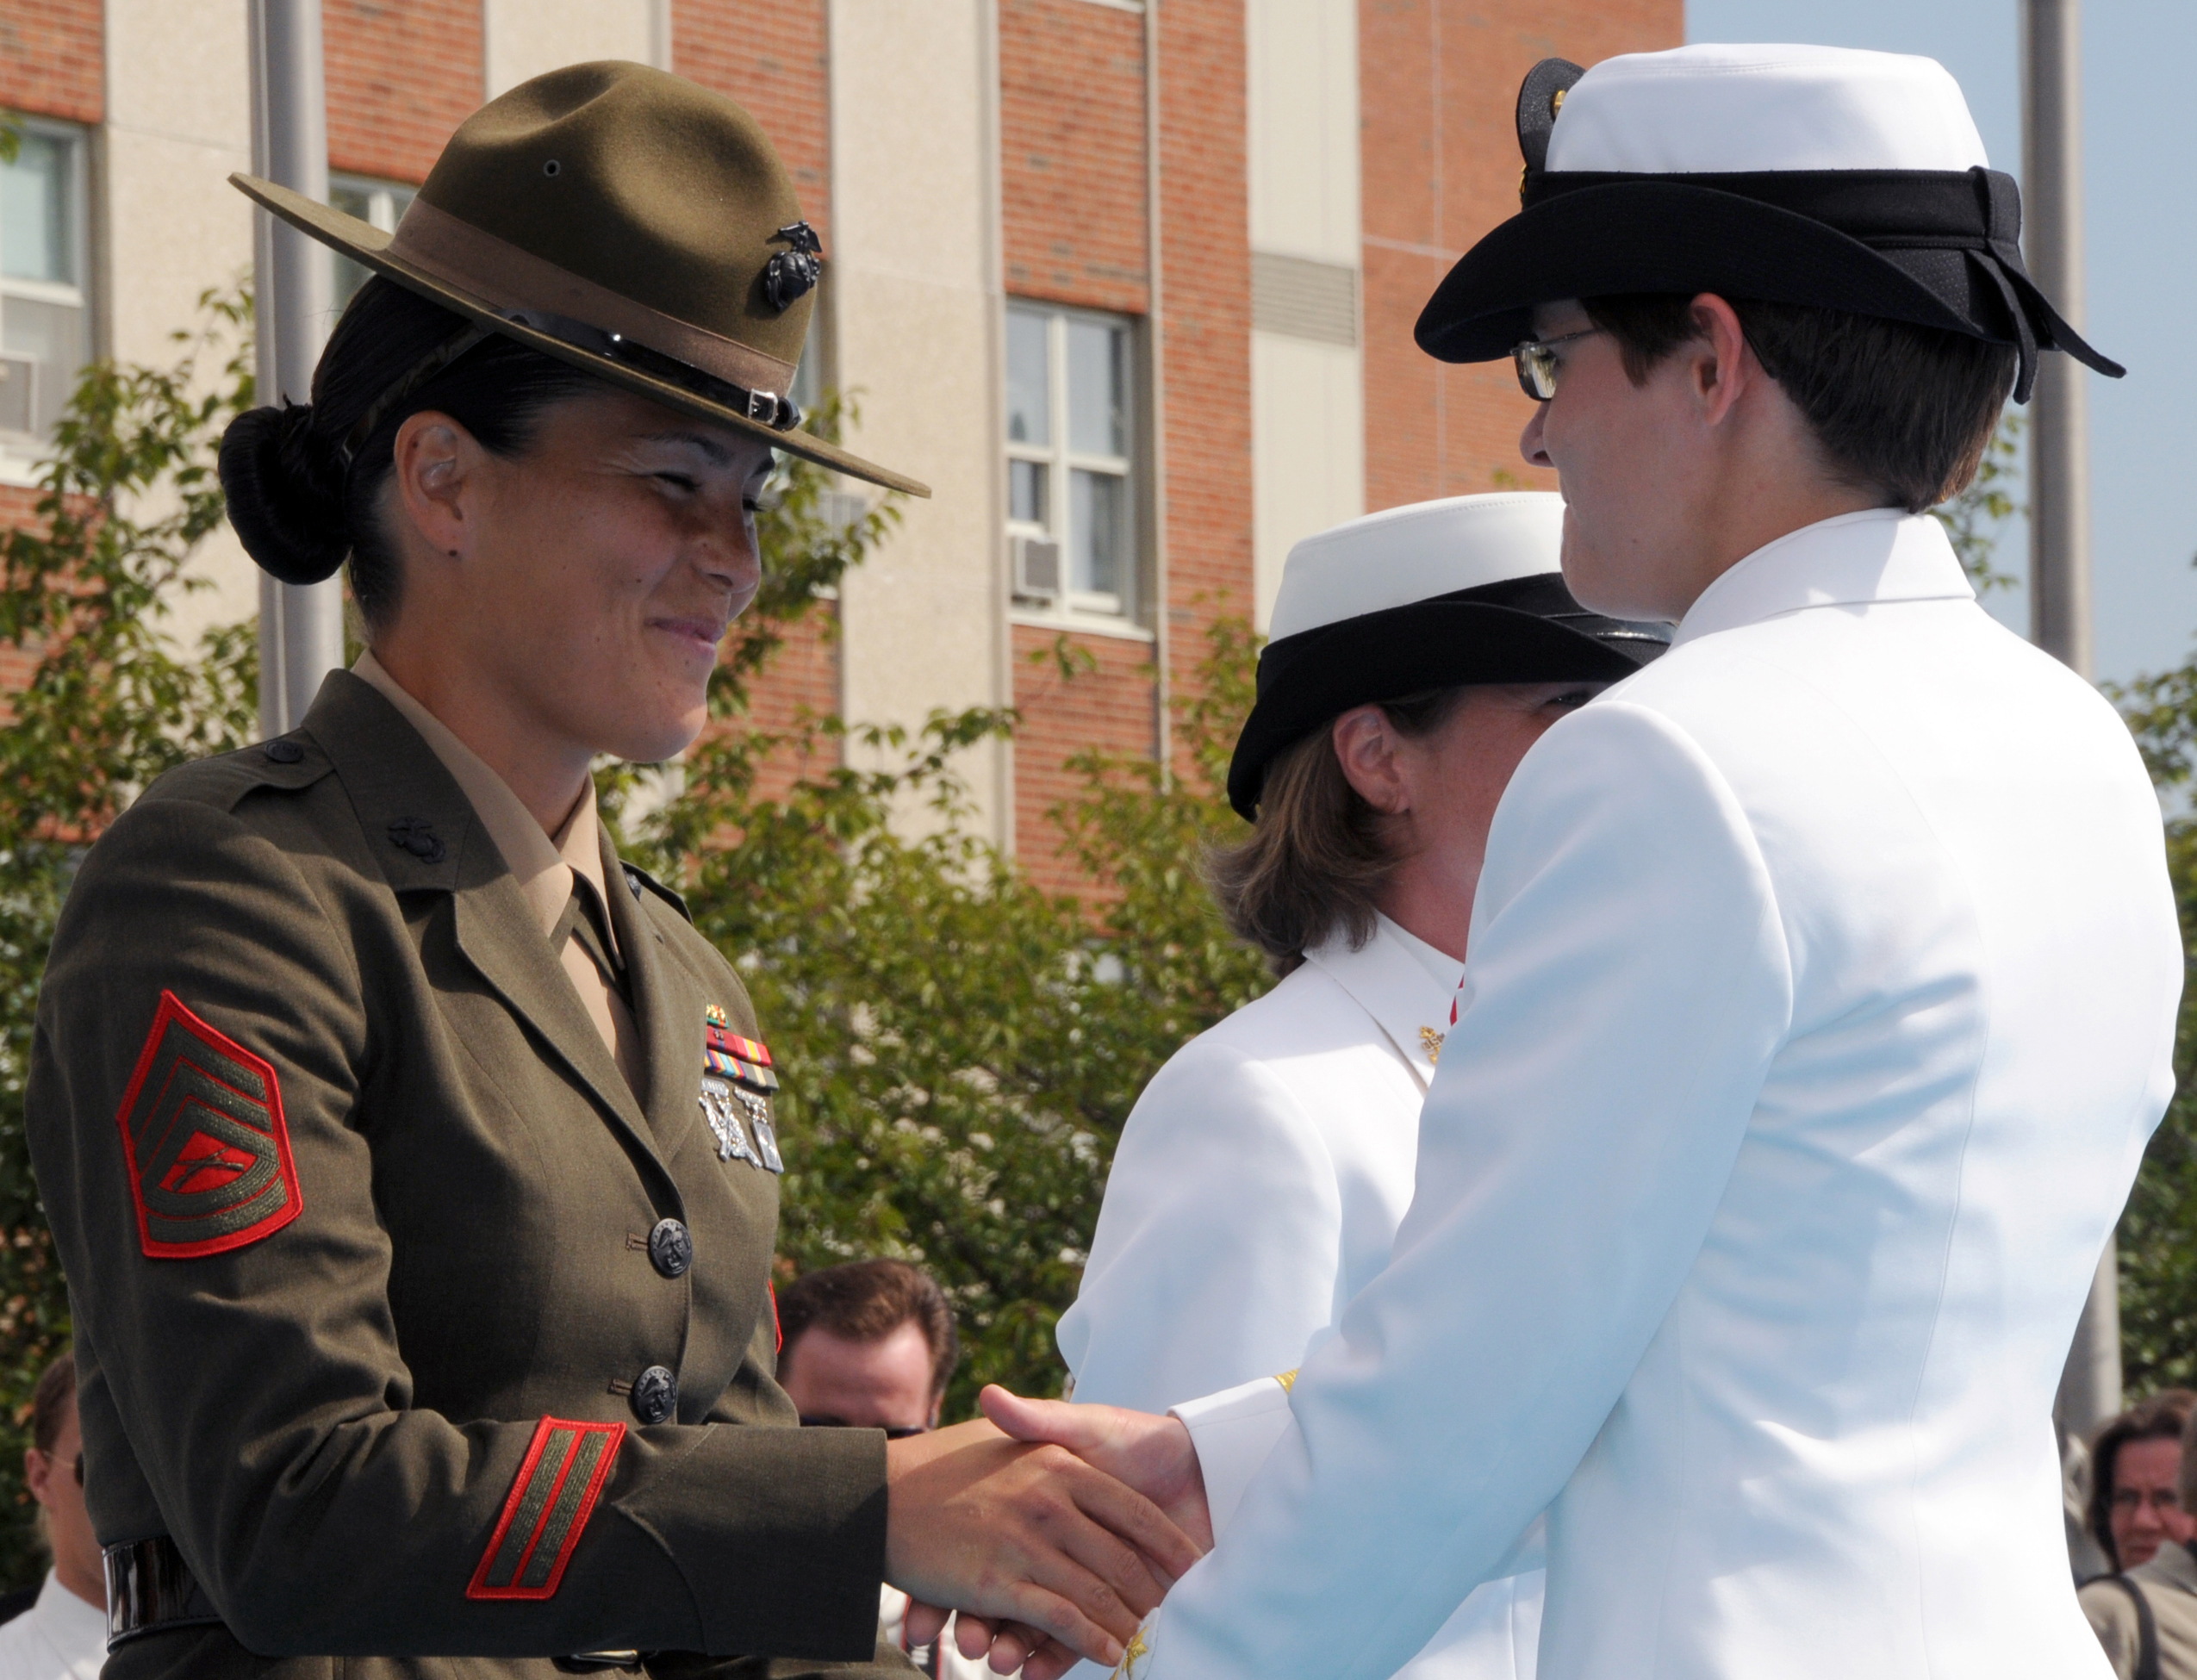 Uniforms of the united states marine corps military wiki fandom powered by wikia - Officer training school marines ...